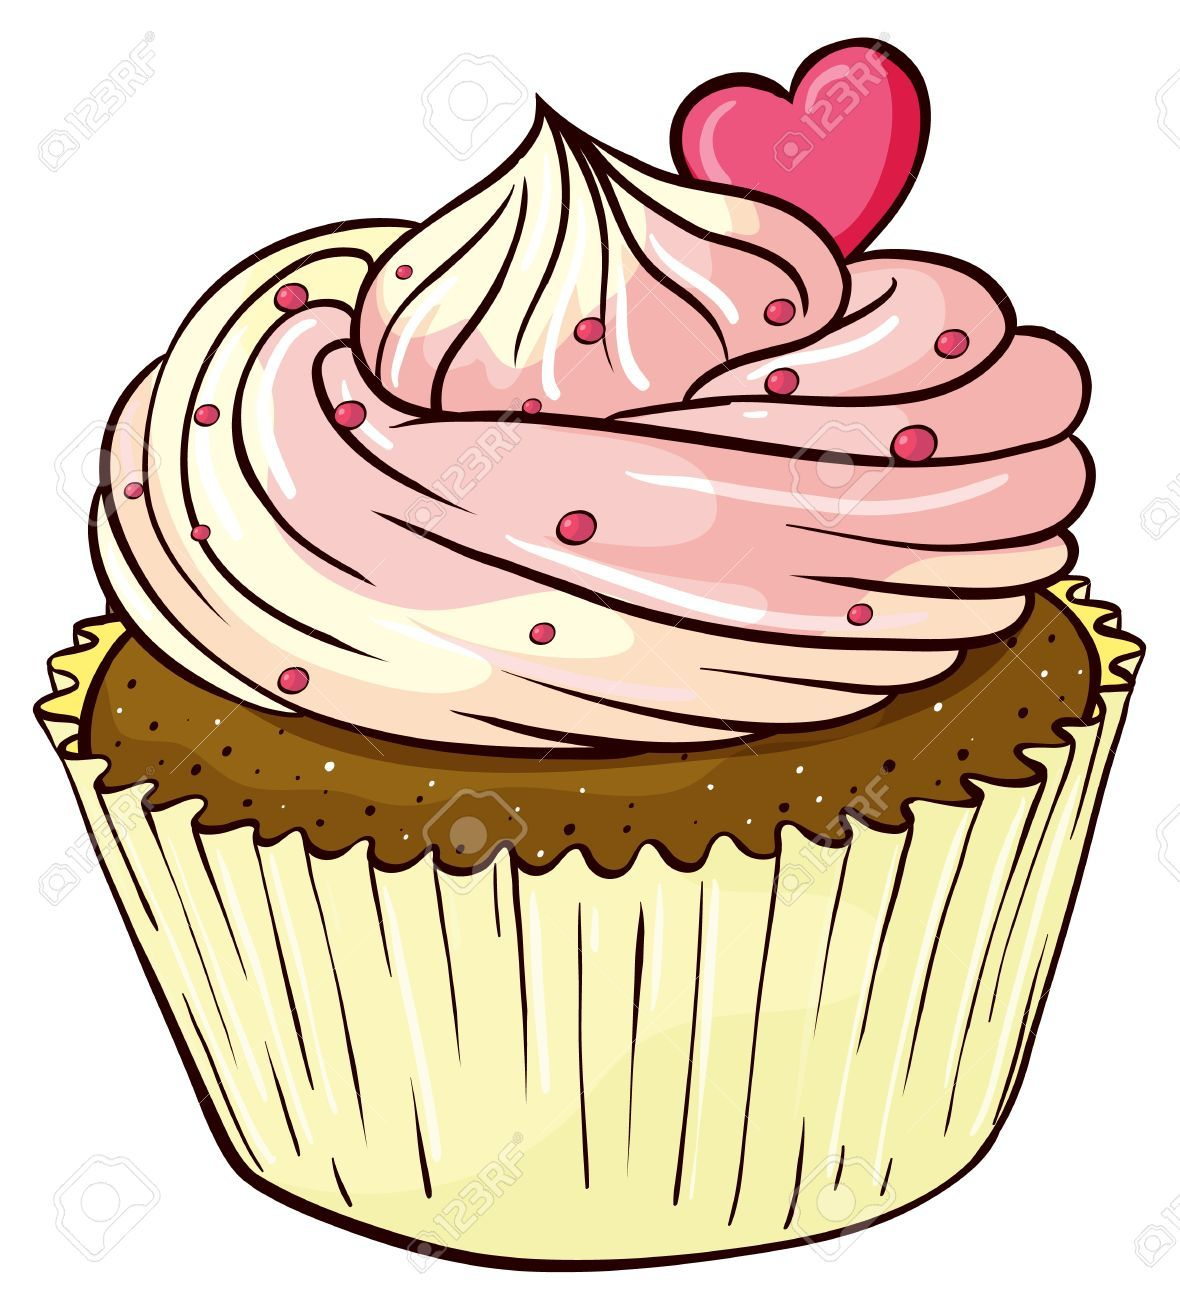 Cartoon cupcake clipart picture free stock Cupcake Clipart Stock Photos Images, Royalty Free Cupcake Clipart ... picture free stock